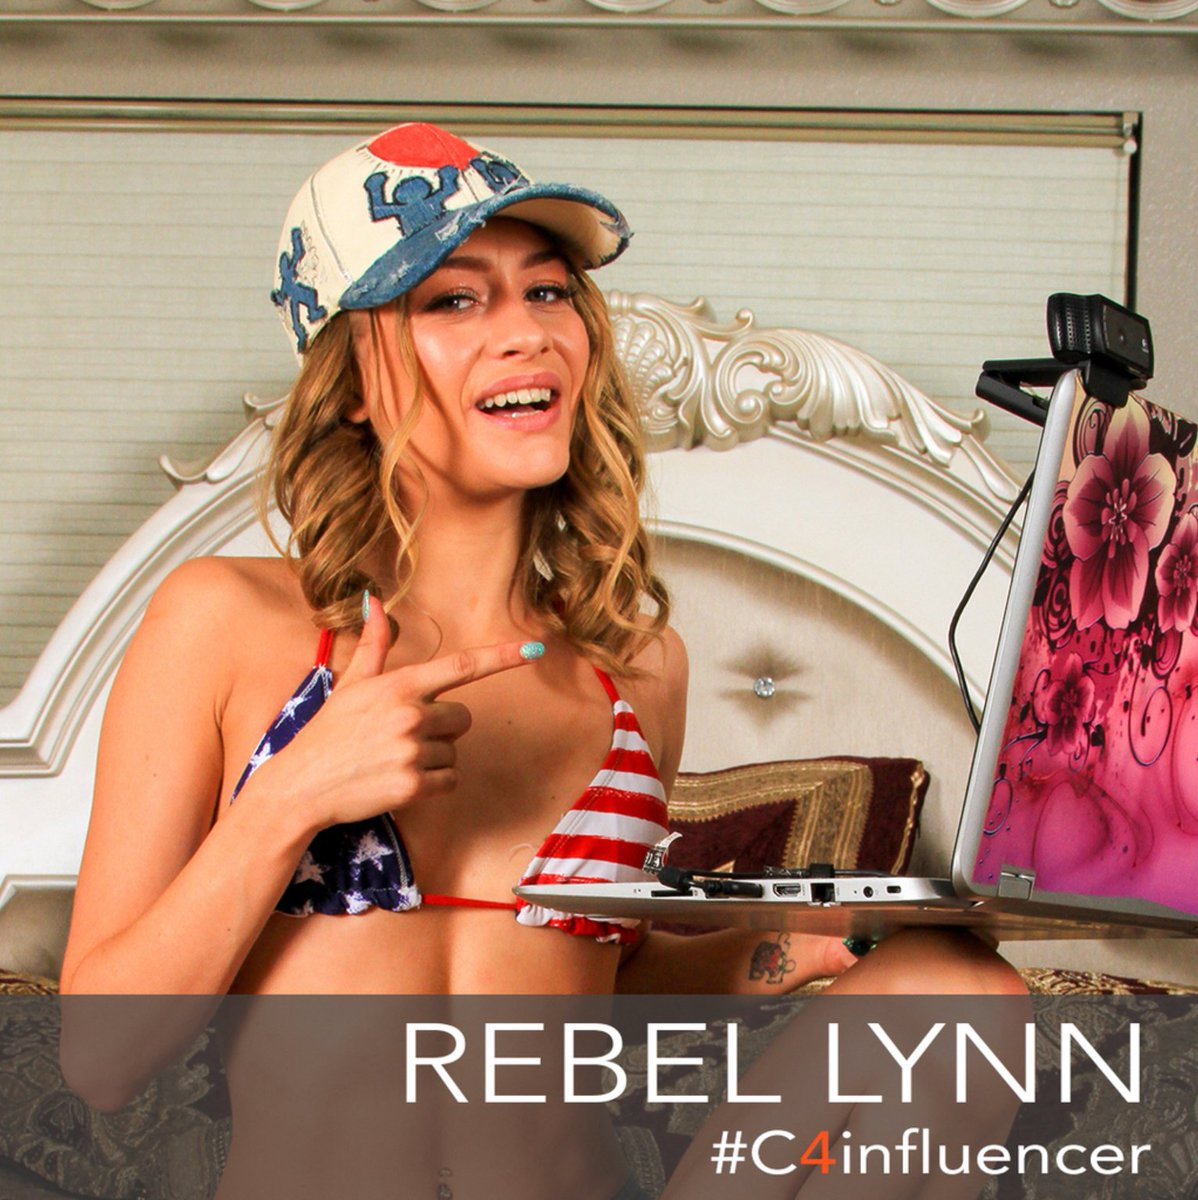 test Twitter Media - RT @Cam4: Rebel Lynn and friends are waiting!  Subscribe now @TheRebelLynn #C4Influencer  https://t.co/eV4hD8T2PK https://t.co/agG0mT6t5B